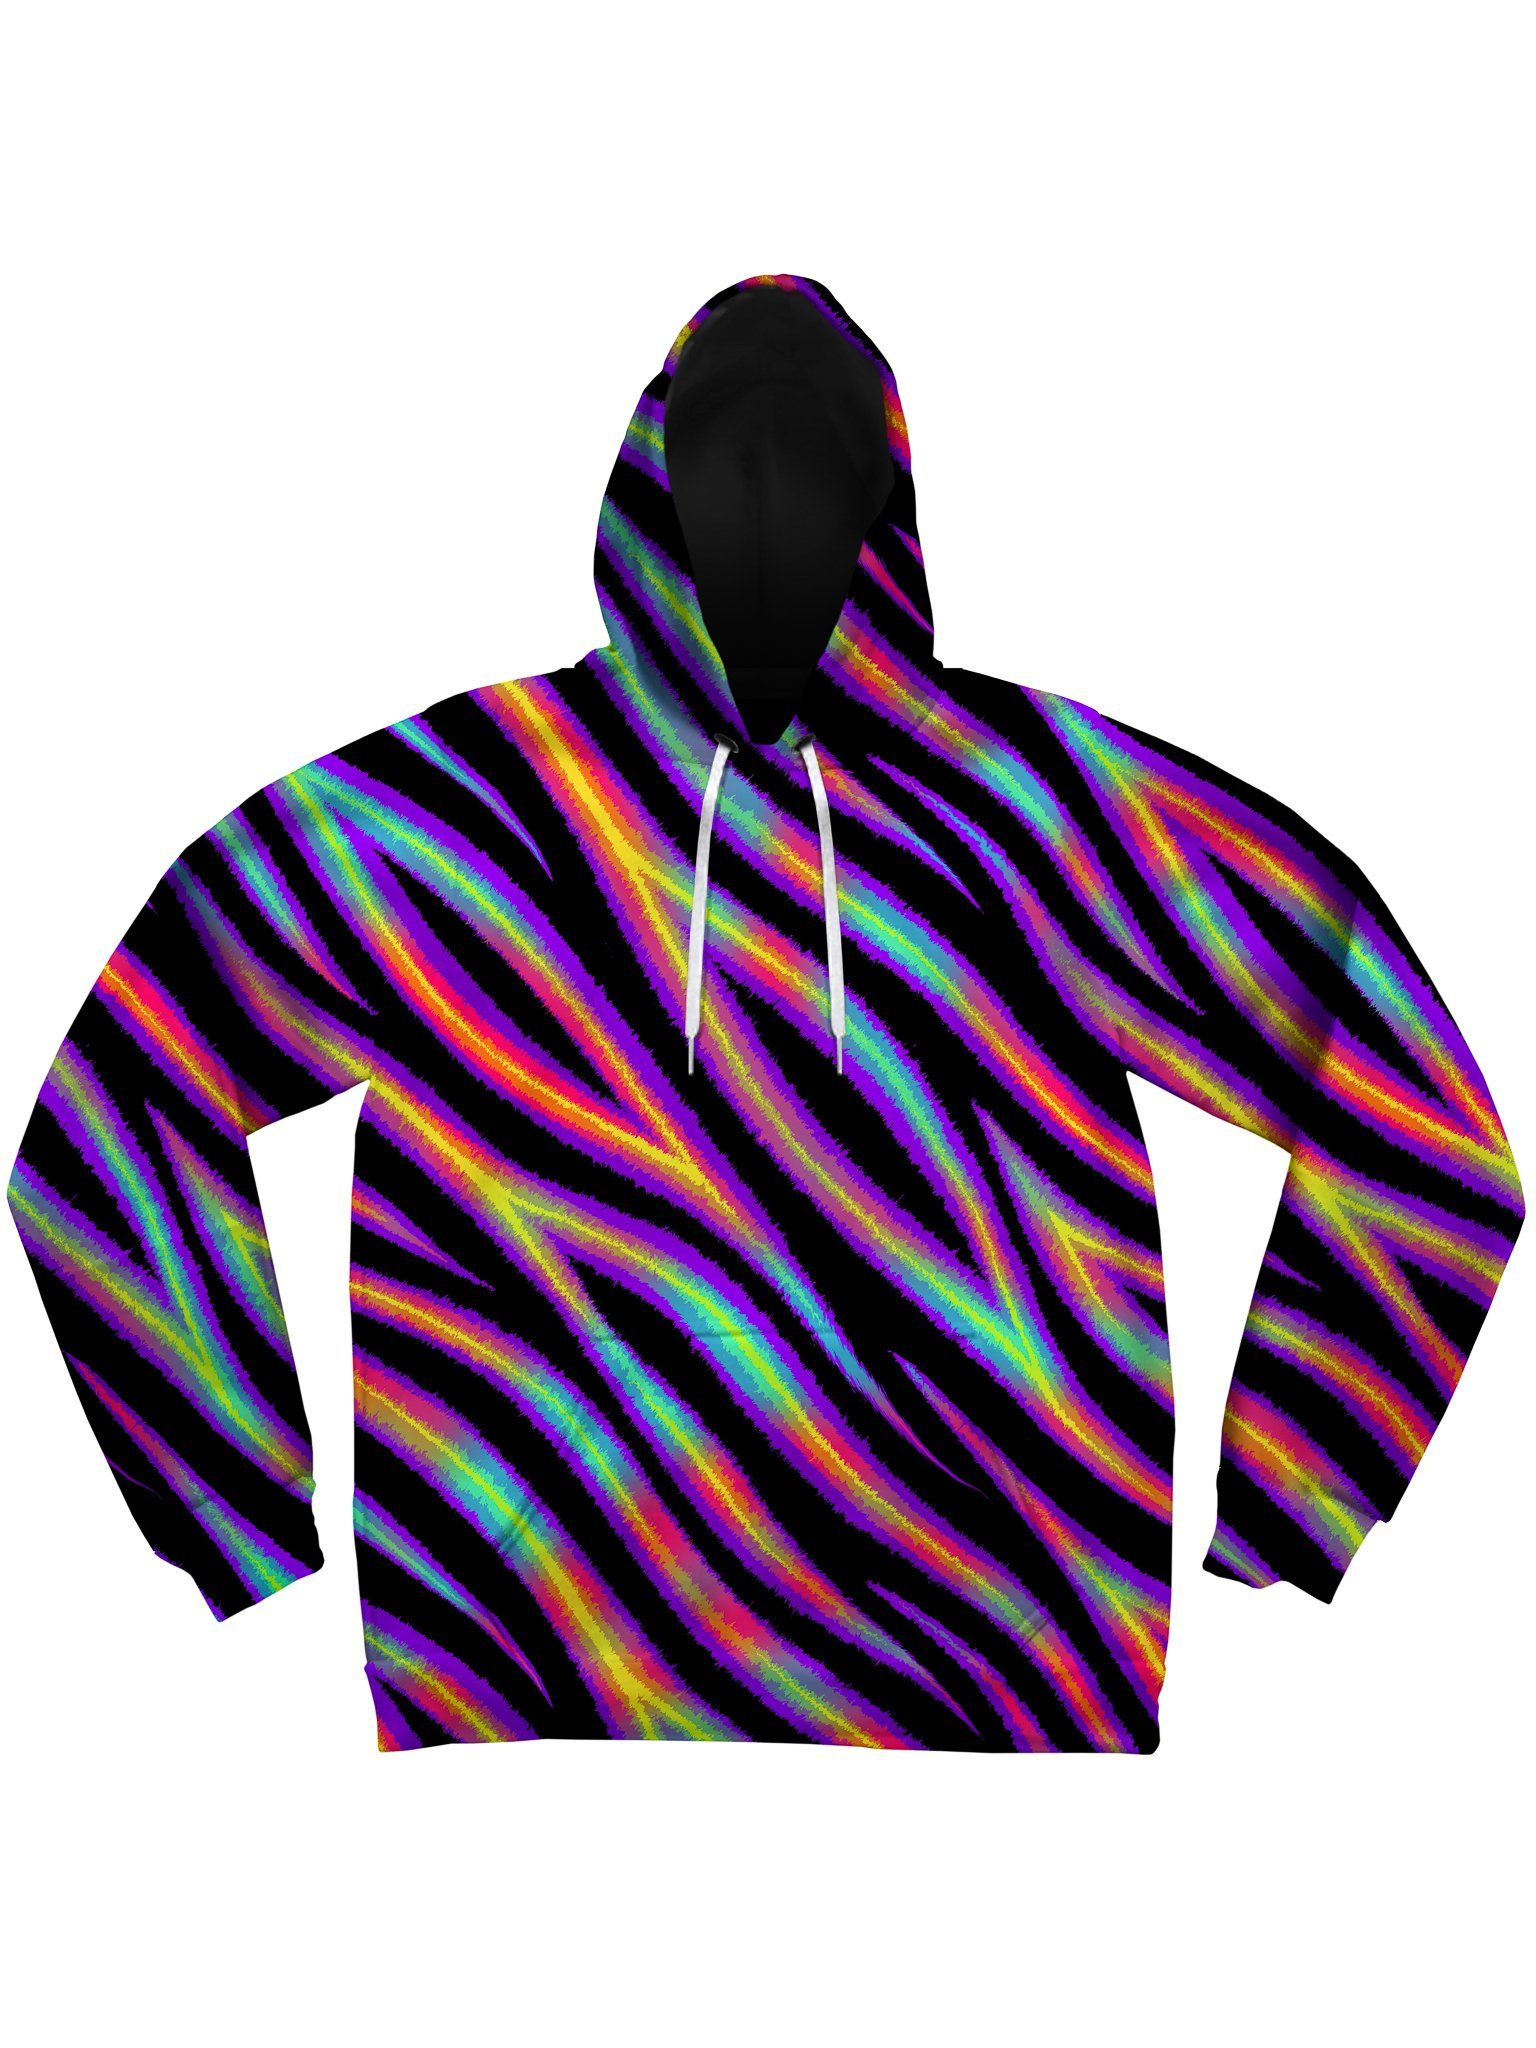 Tiger Stripes (Colorful) Unisex Hoodie Pullover Hoodies Electro Threads